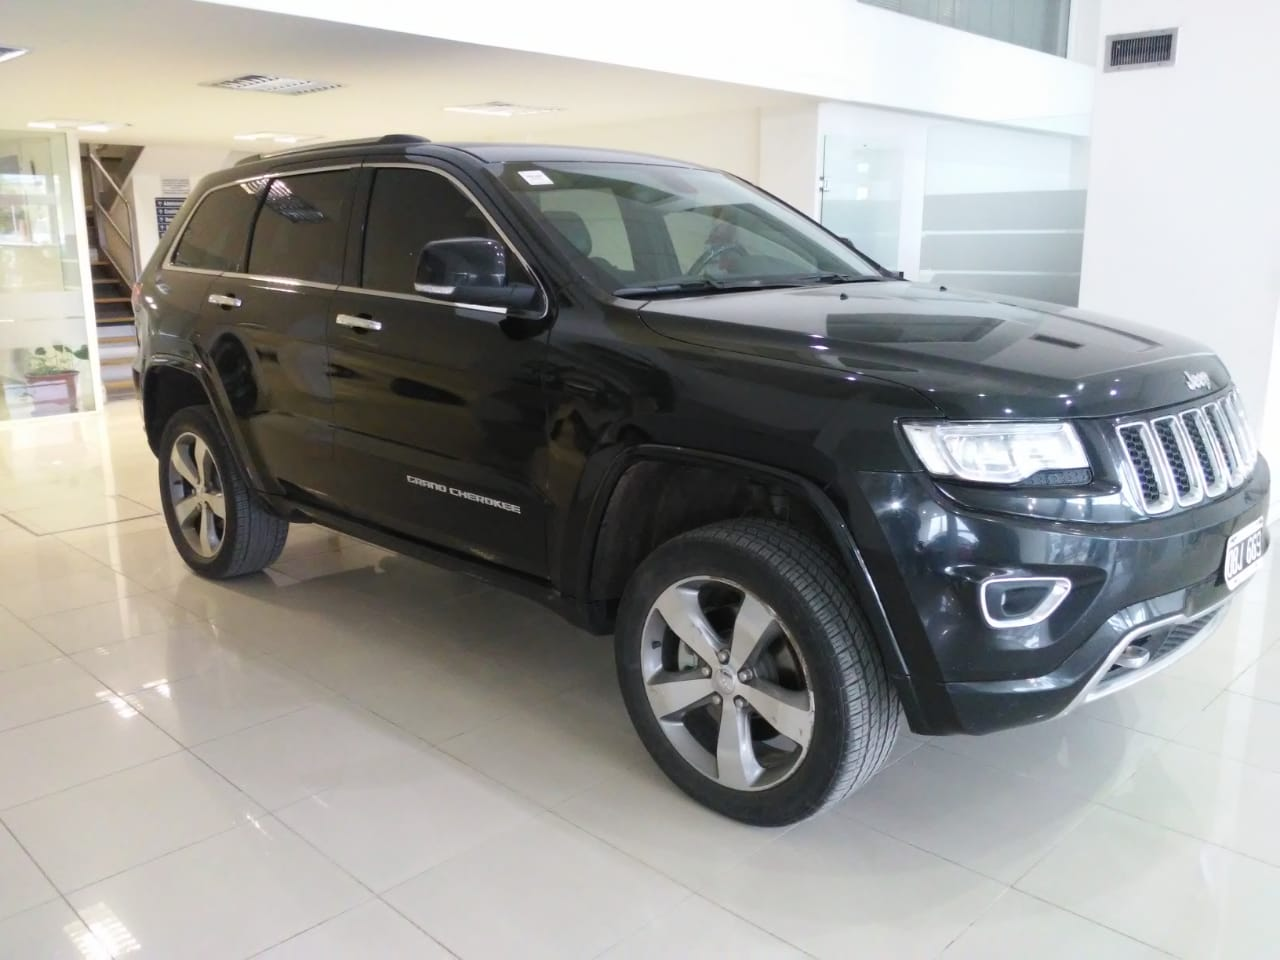 2013 JEEP GRAND CHEROKEE OVERLAND AT 3.6